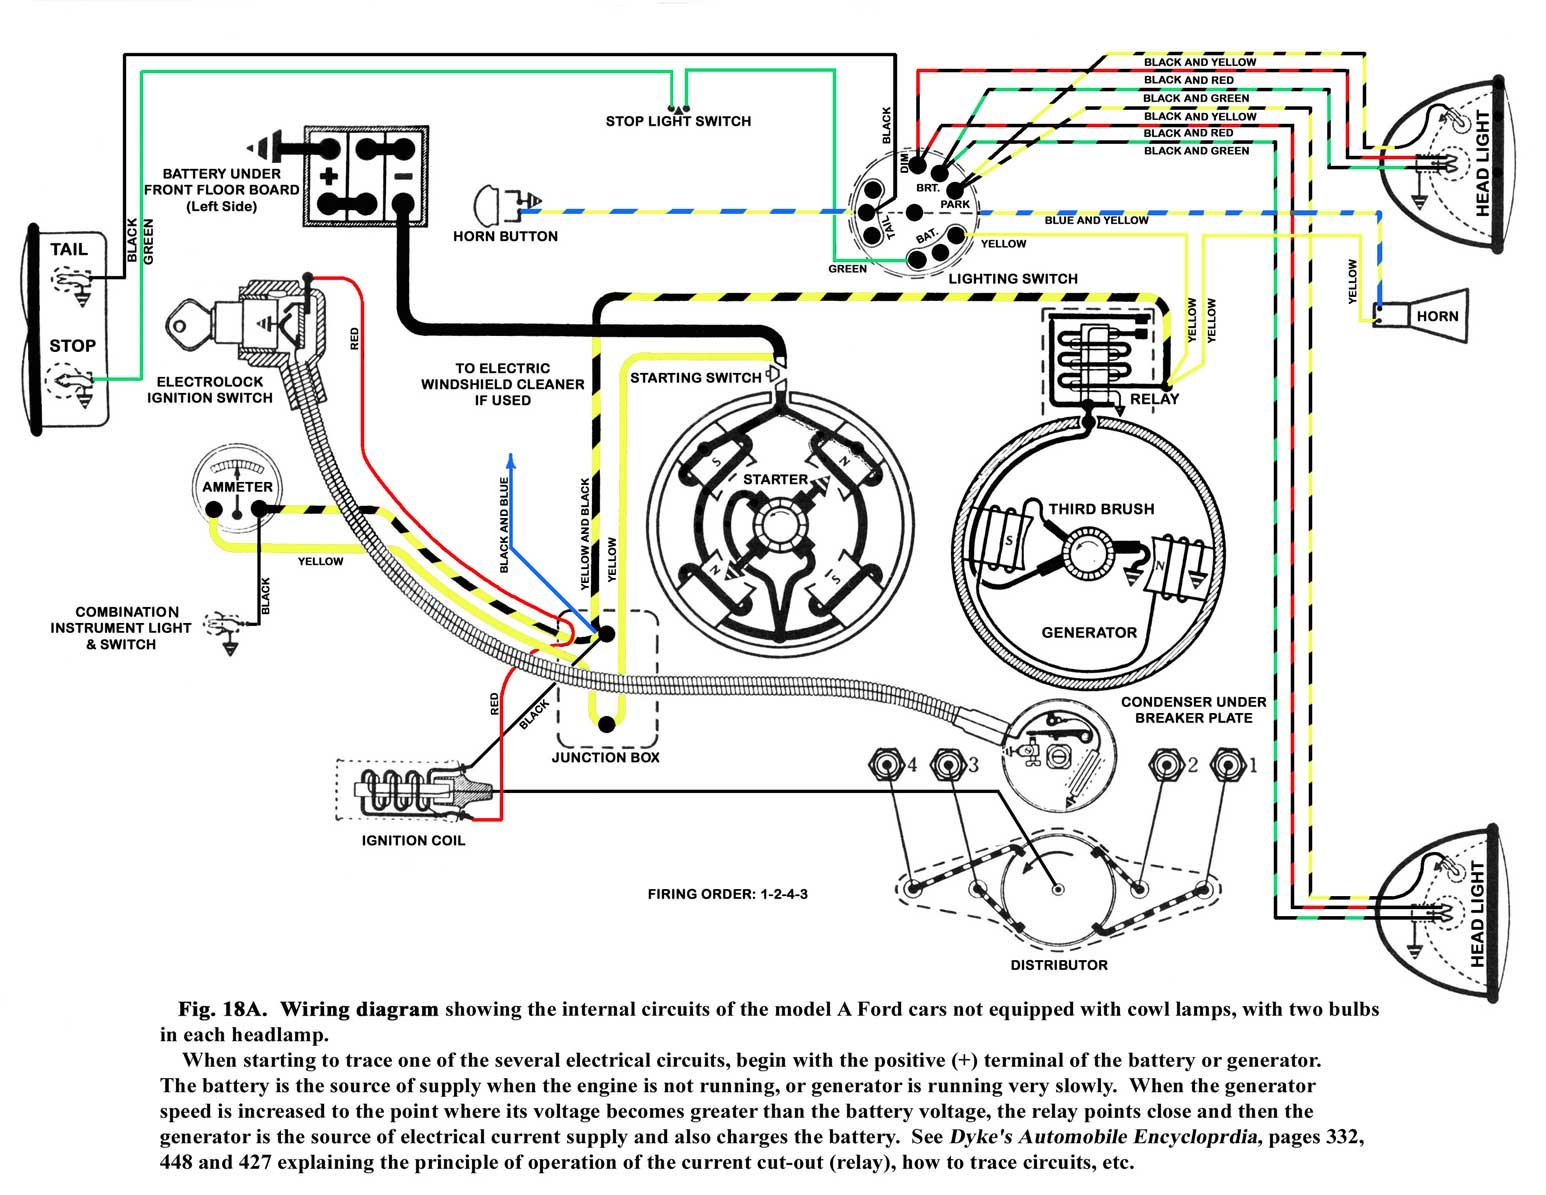 wiring diagramcolor2sm?w=240 model a wiring diagram sacramento capitol a's ford model a wiring diagram at alyssarenee.co